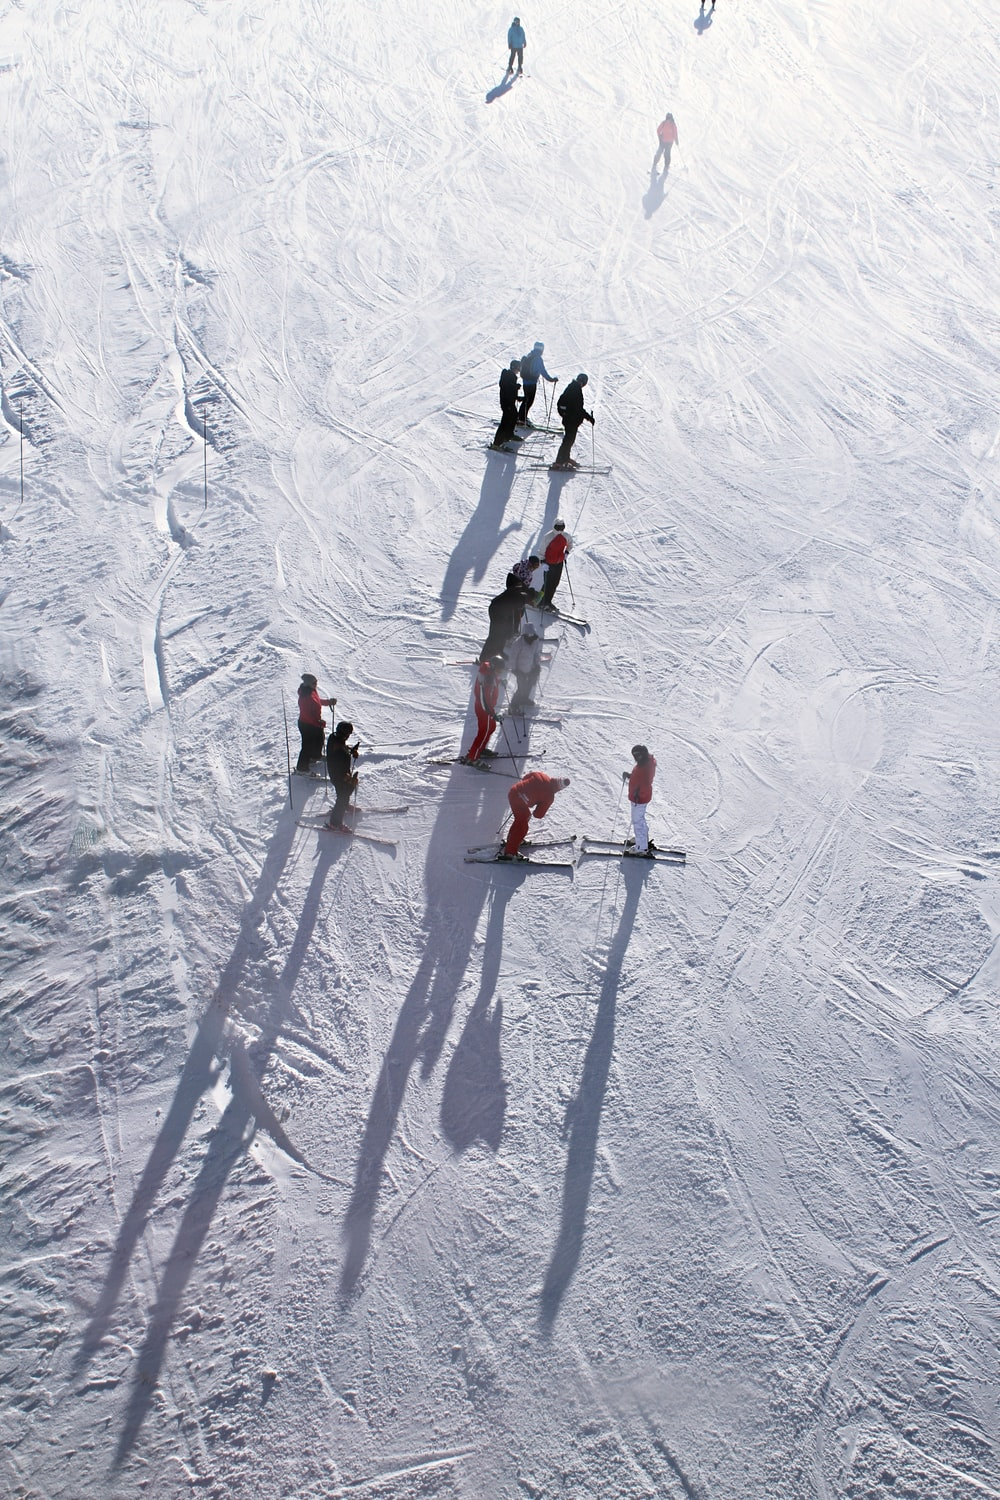 people skiing on snow during daytime